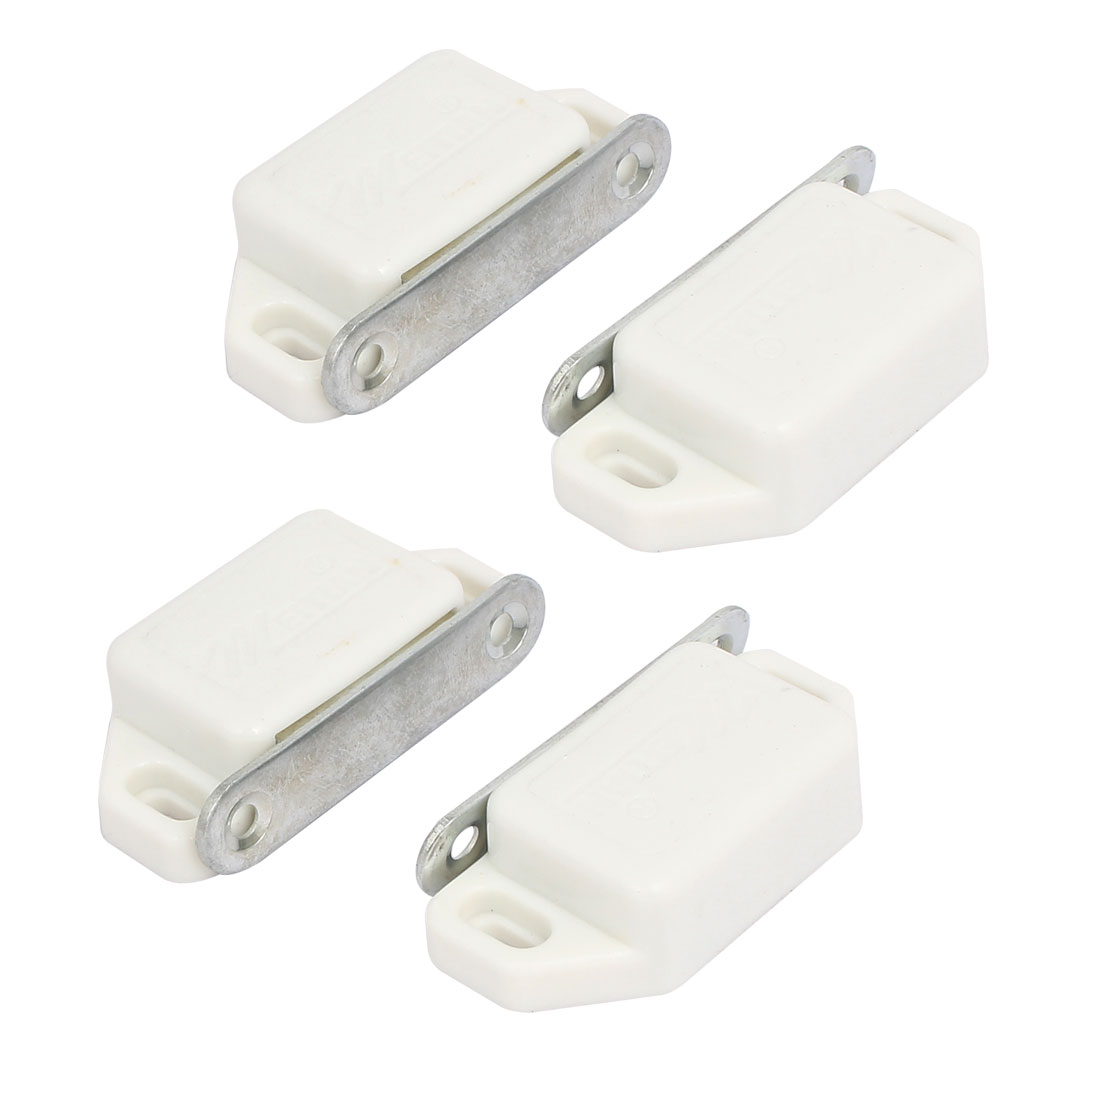 Cupboard Wardrobe Plastic Shell Magnetic Catch Latch White 57mmx26mmx15mm 4pcs